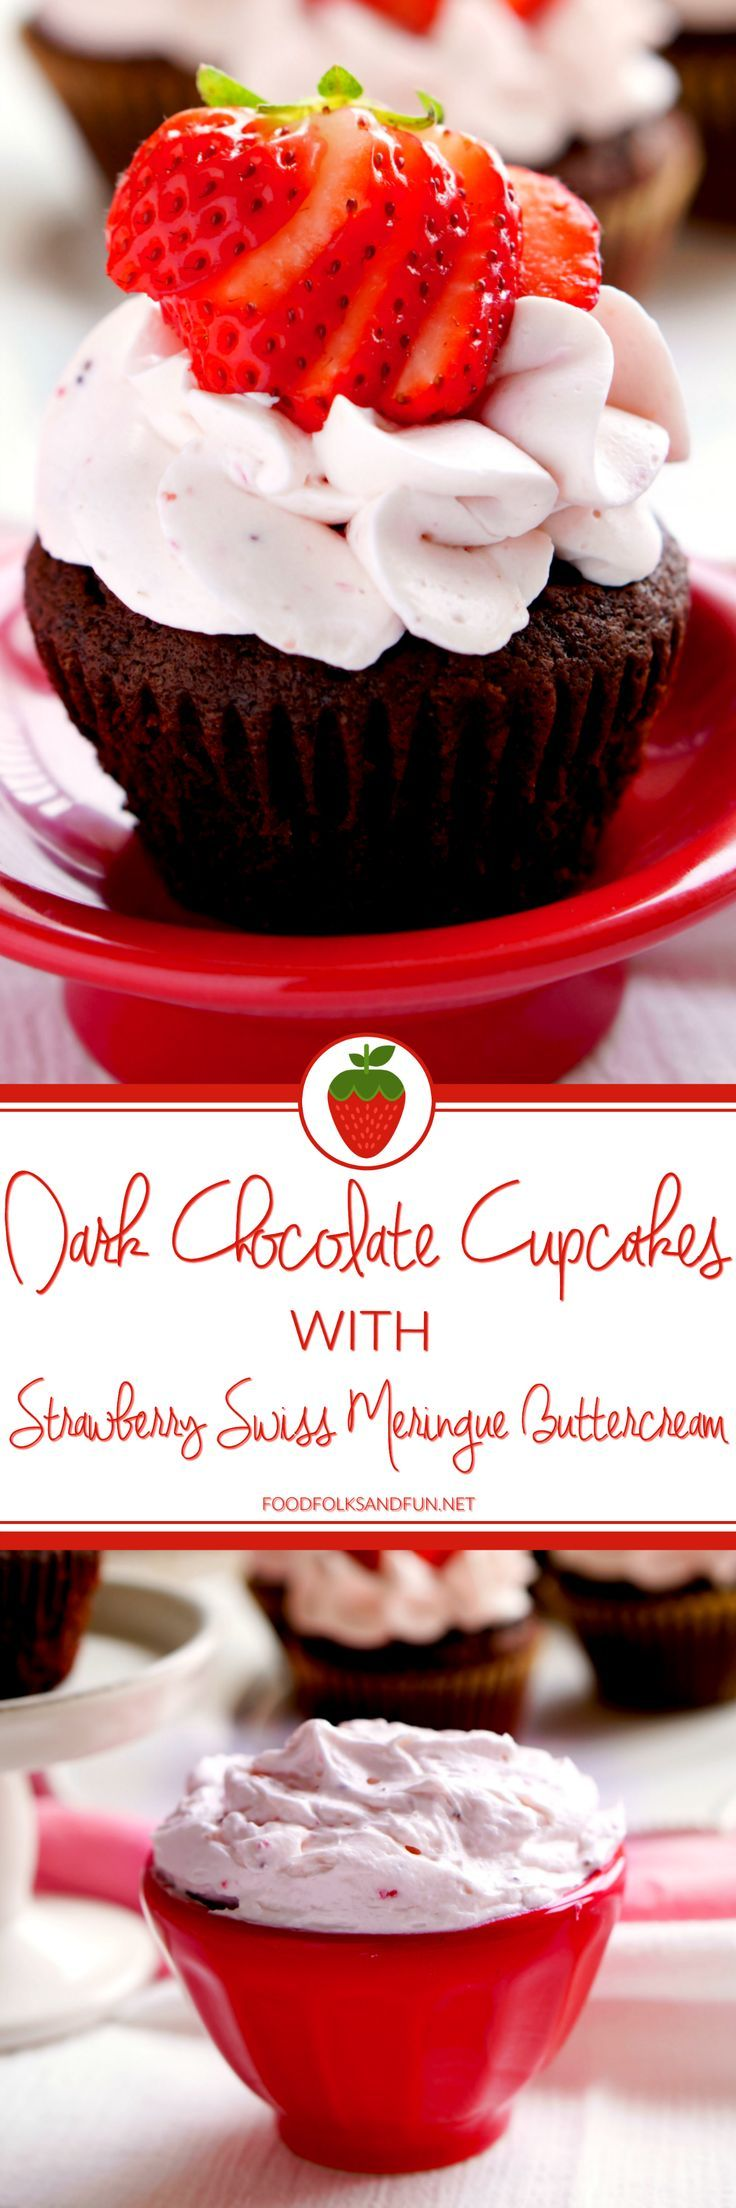 These Dark Chocolate Cupcakes are the perfect cupcakes when you need a chocolate fix. They're covered with a light, creamy and not too sweet Strawberry Swiss Meringue Buttercream, and perfect for Valentine's Day! | #Chocolate #ChocolateLover #ChocolateRecipe #Cupcakes #Strawberry #ValentinesDay #ValentinesDayRecipe